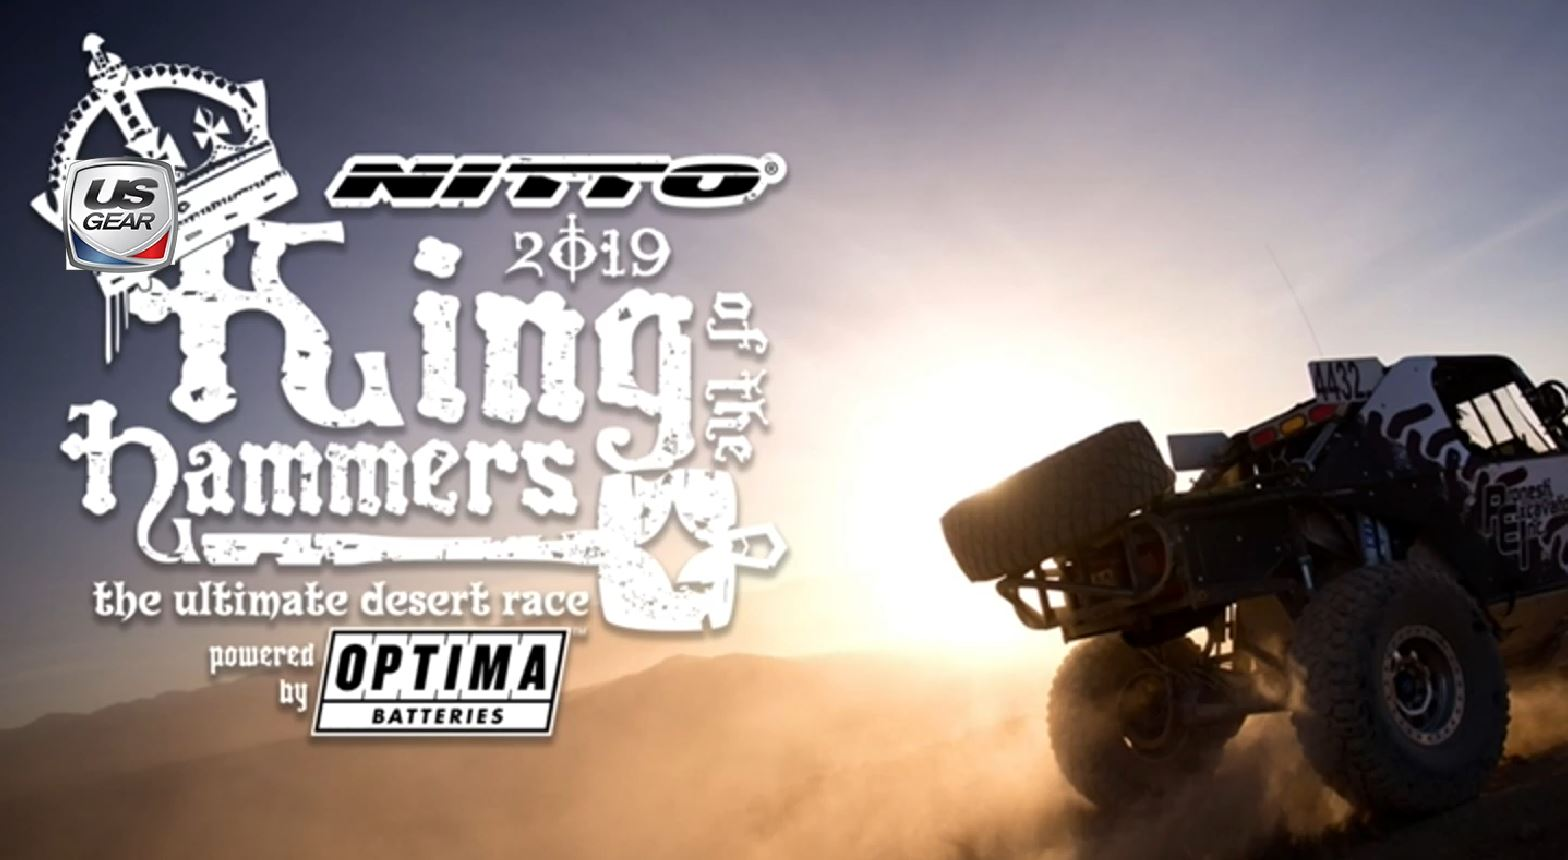 Here Is The Complete King Of The Hammers Race Replay! If You Missed It, Sit Down And Watch.